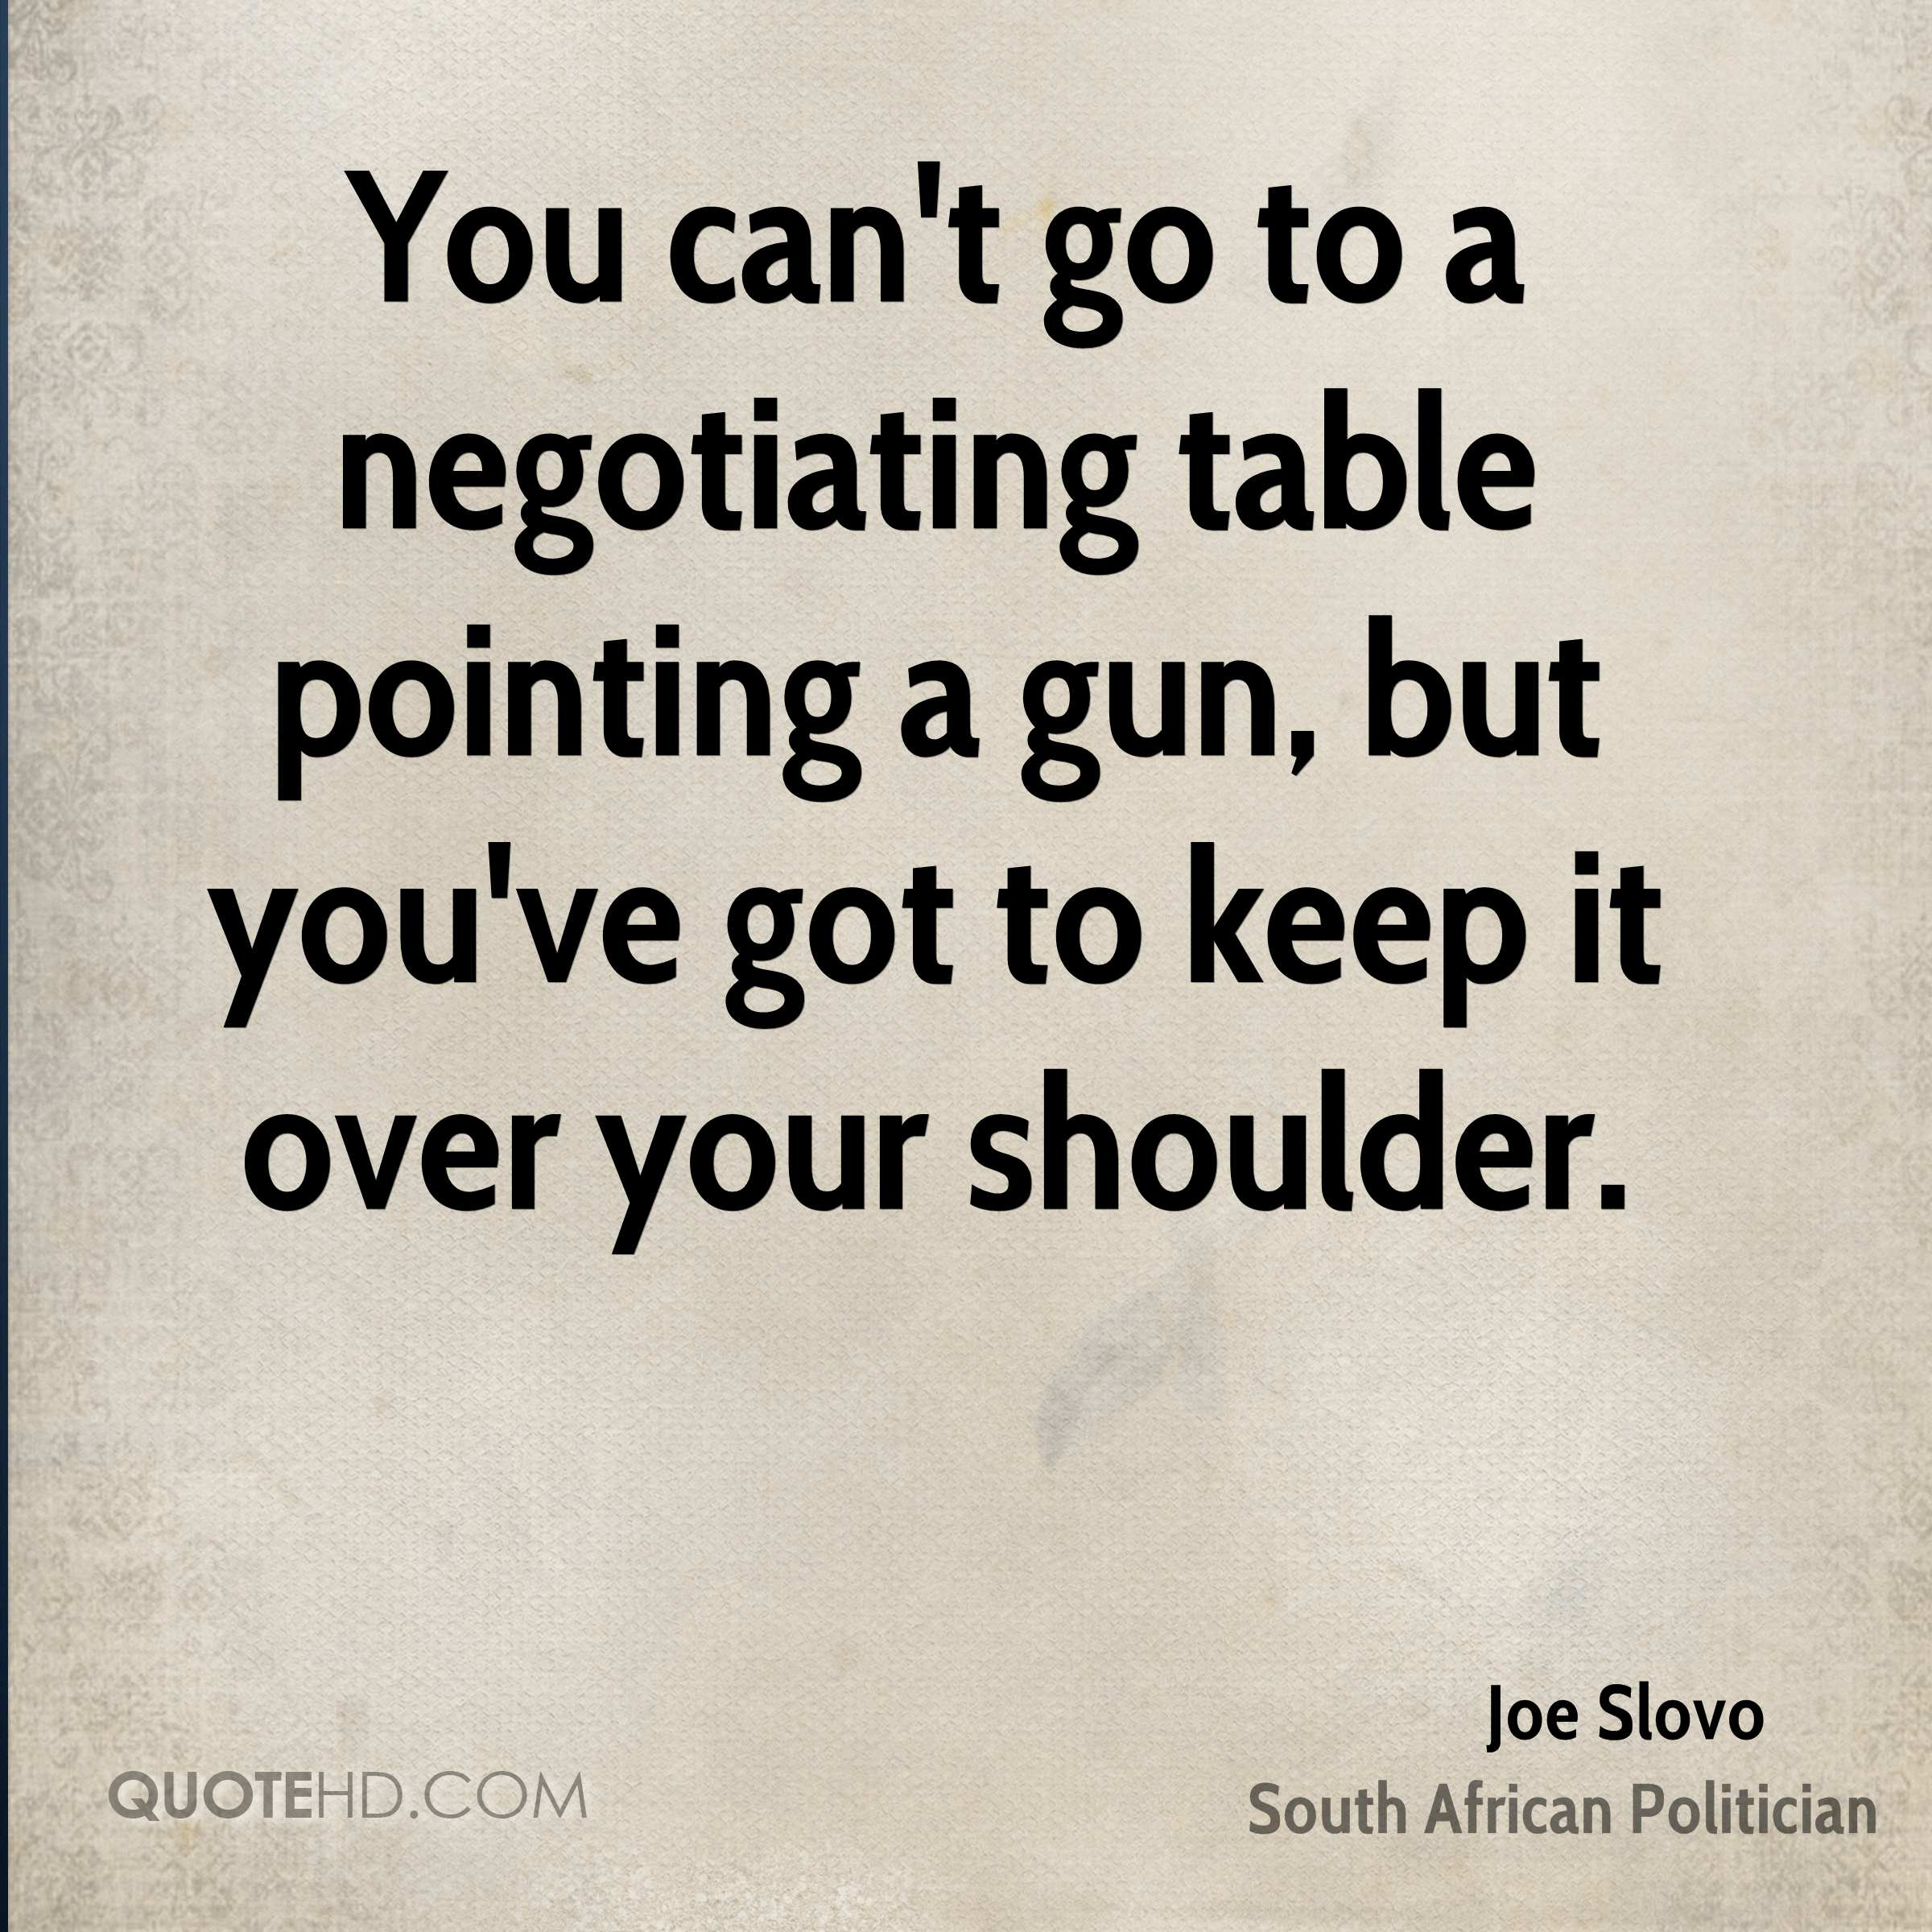 You can't go to a negotiating table pointing a gun, but you've got to keep it over your shoulder.